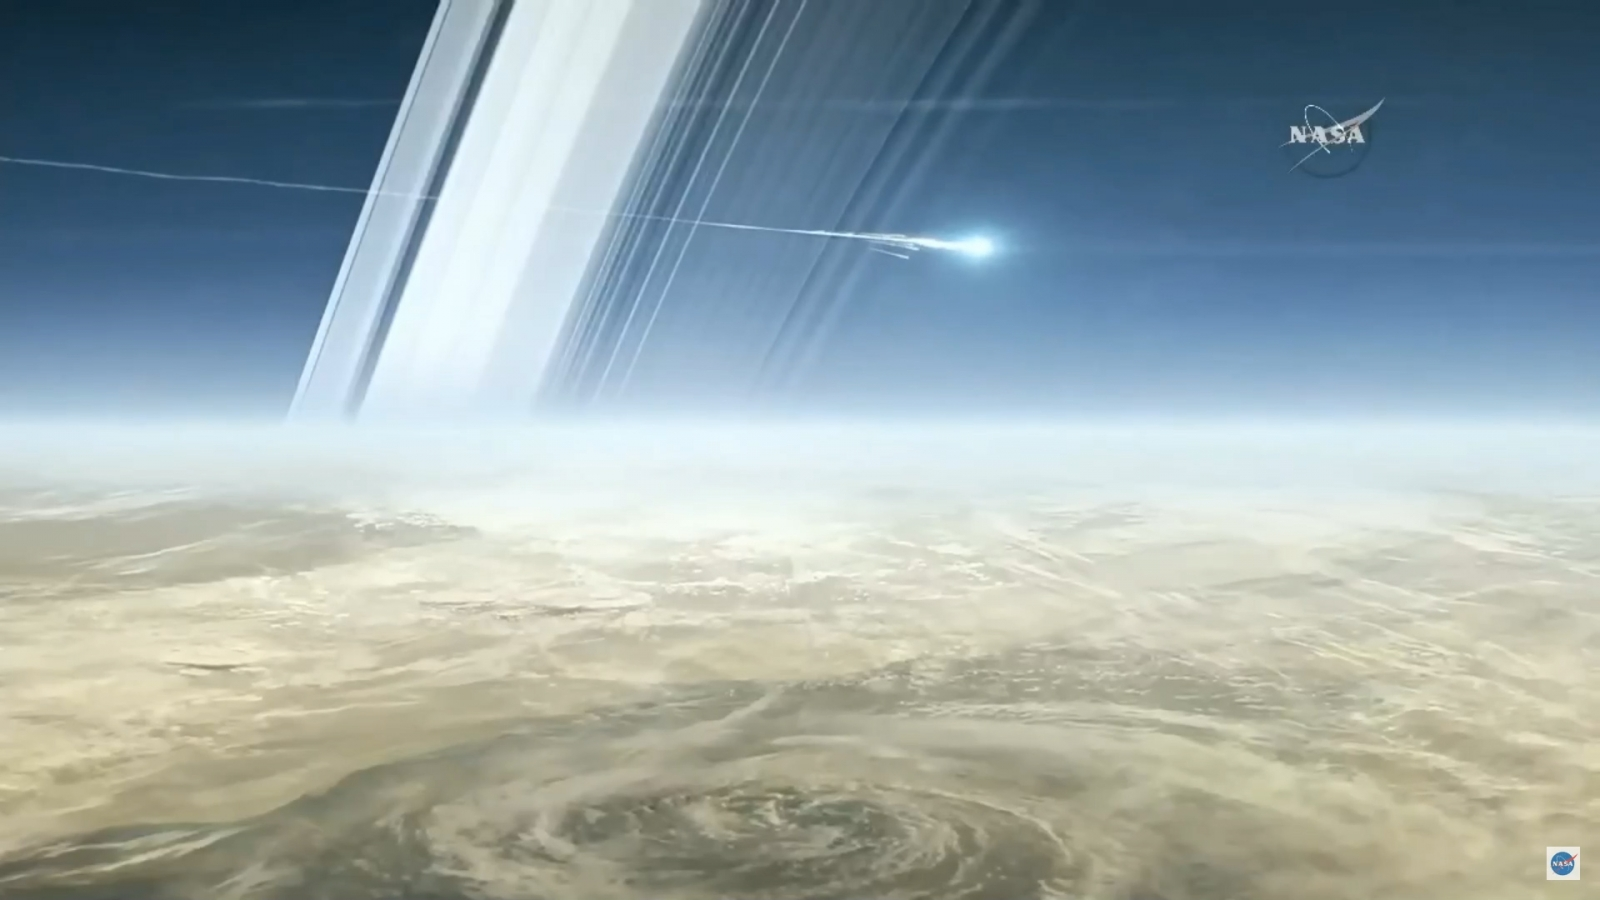 watch-20-year-cassini-mission-end-as-nasa-probe-plunges-into-saturn